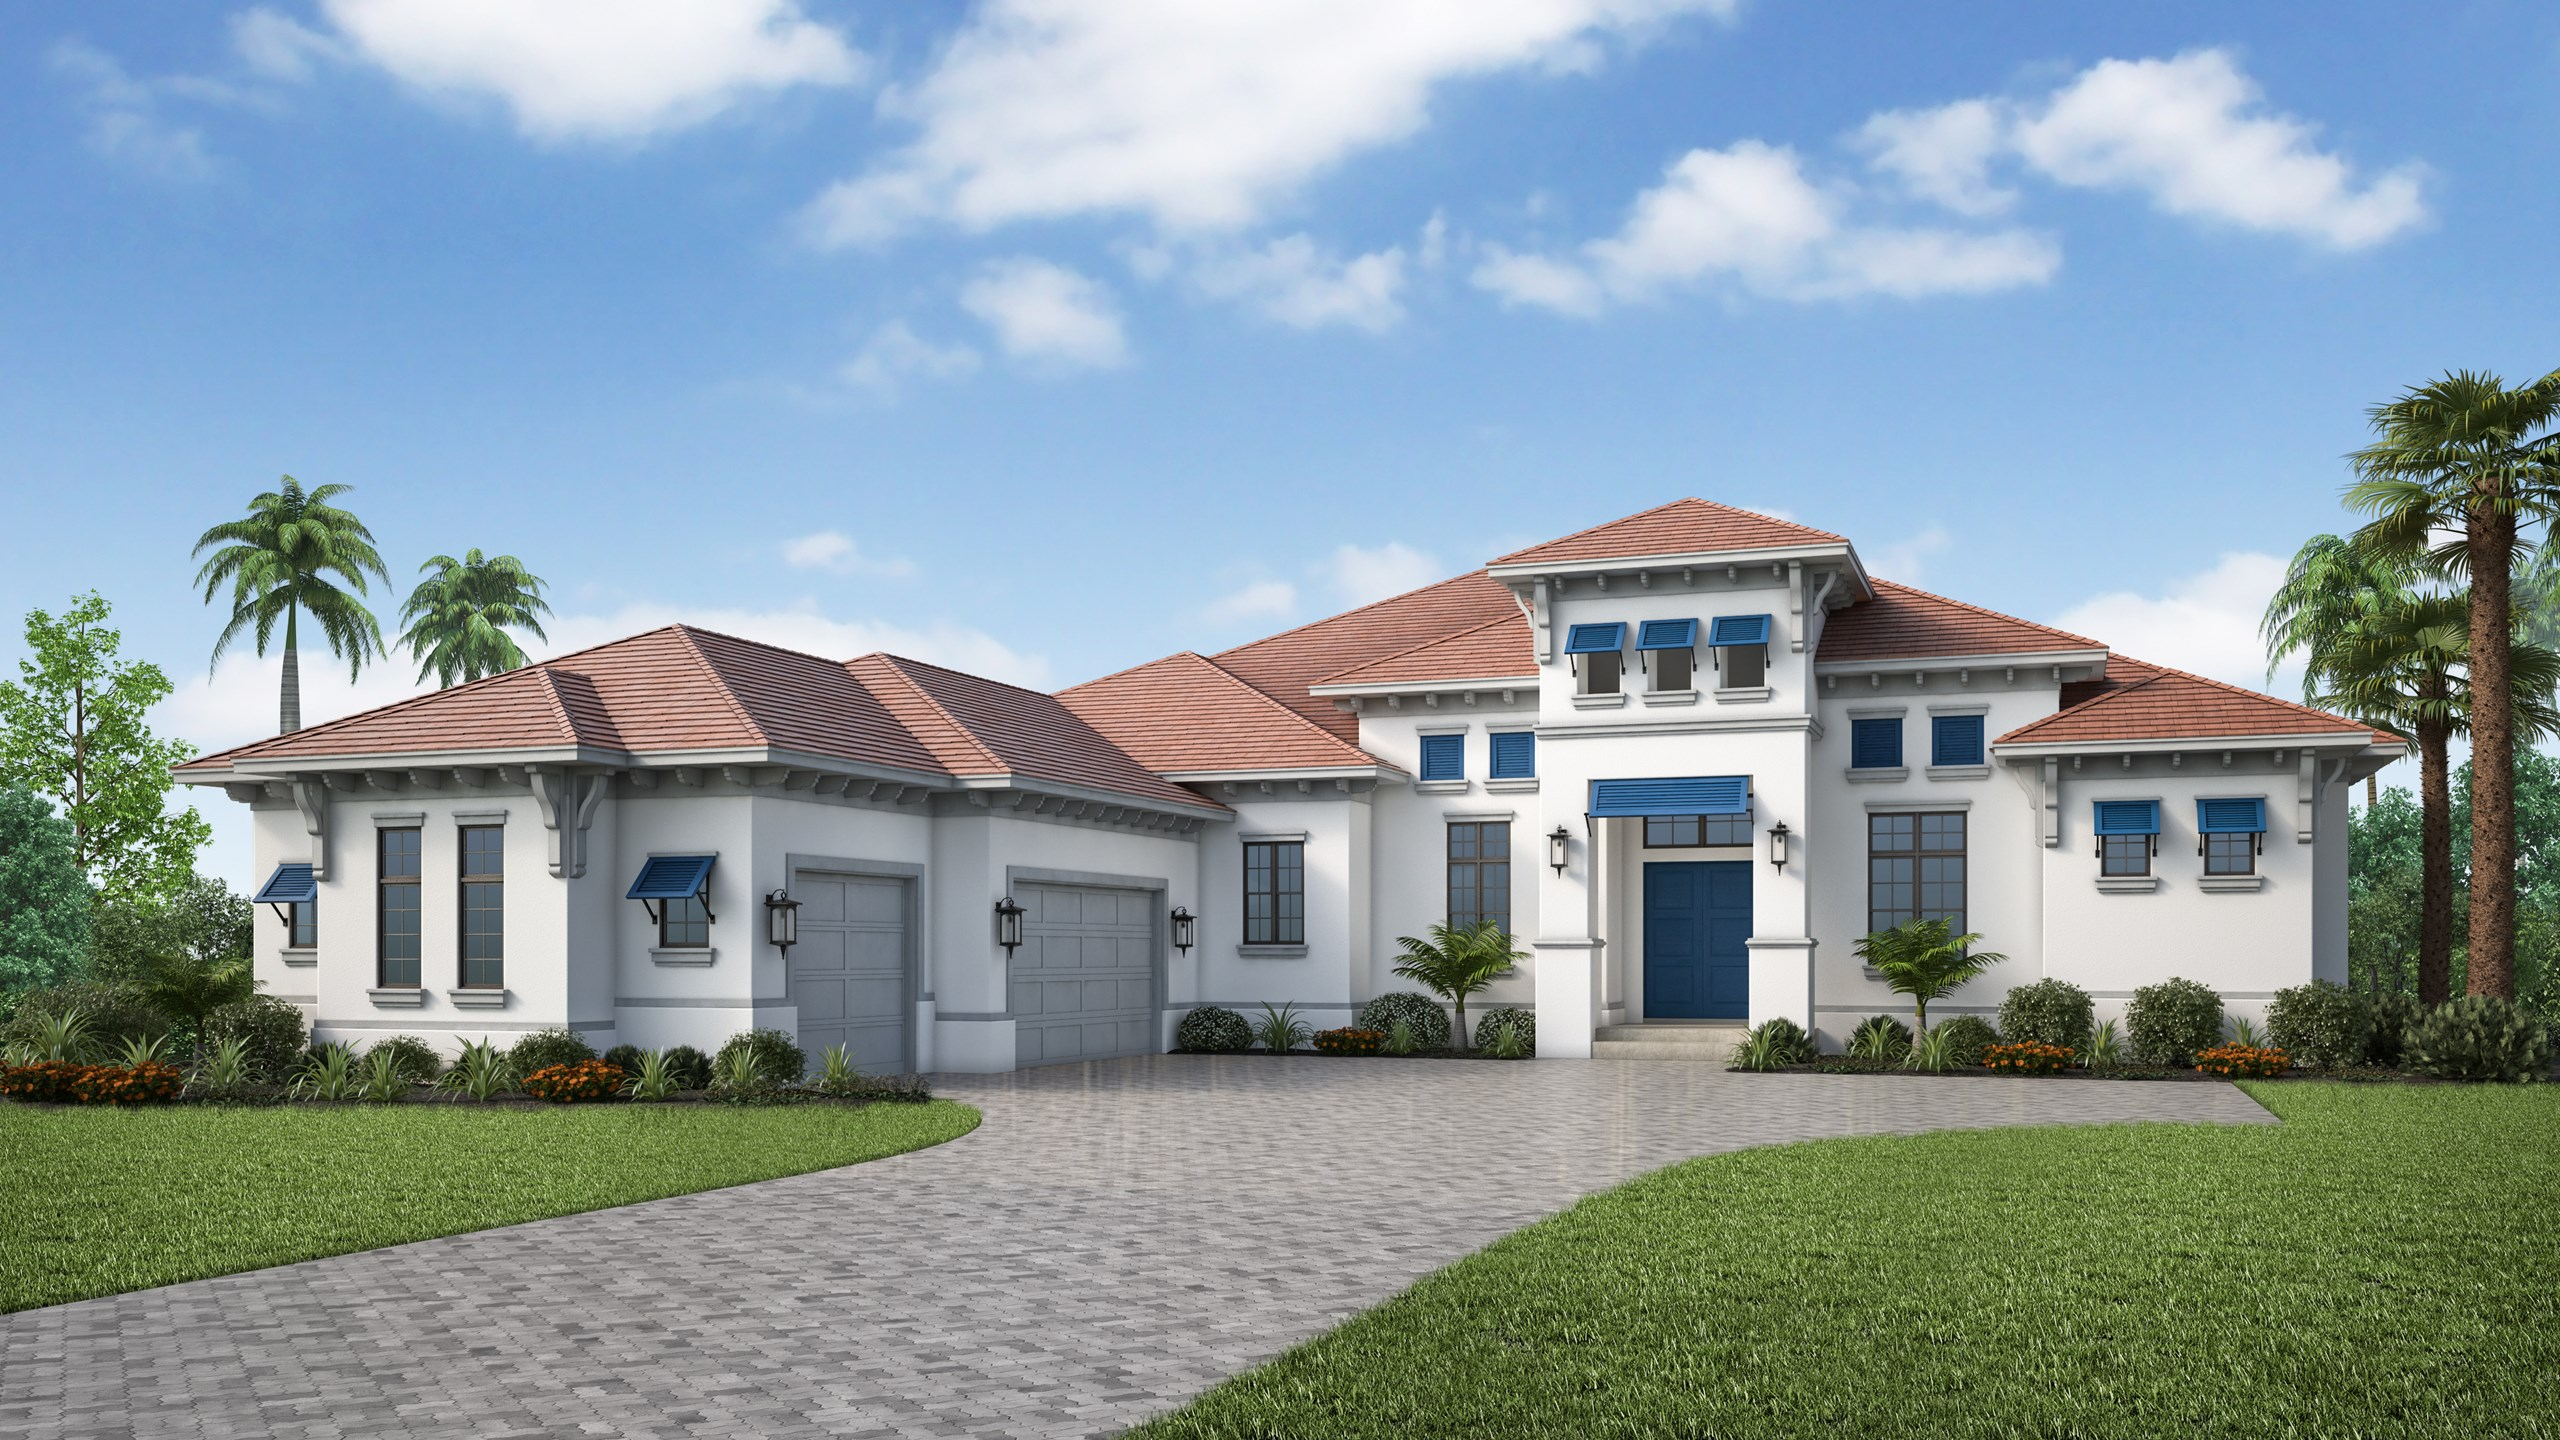 Kim Christ Kanatzar Selling New Homes At The Lake Club At Lakewood Ranch